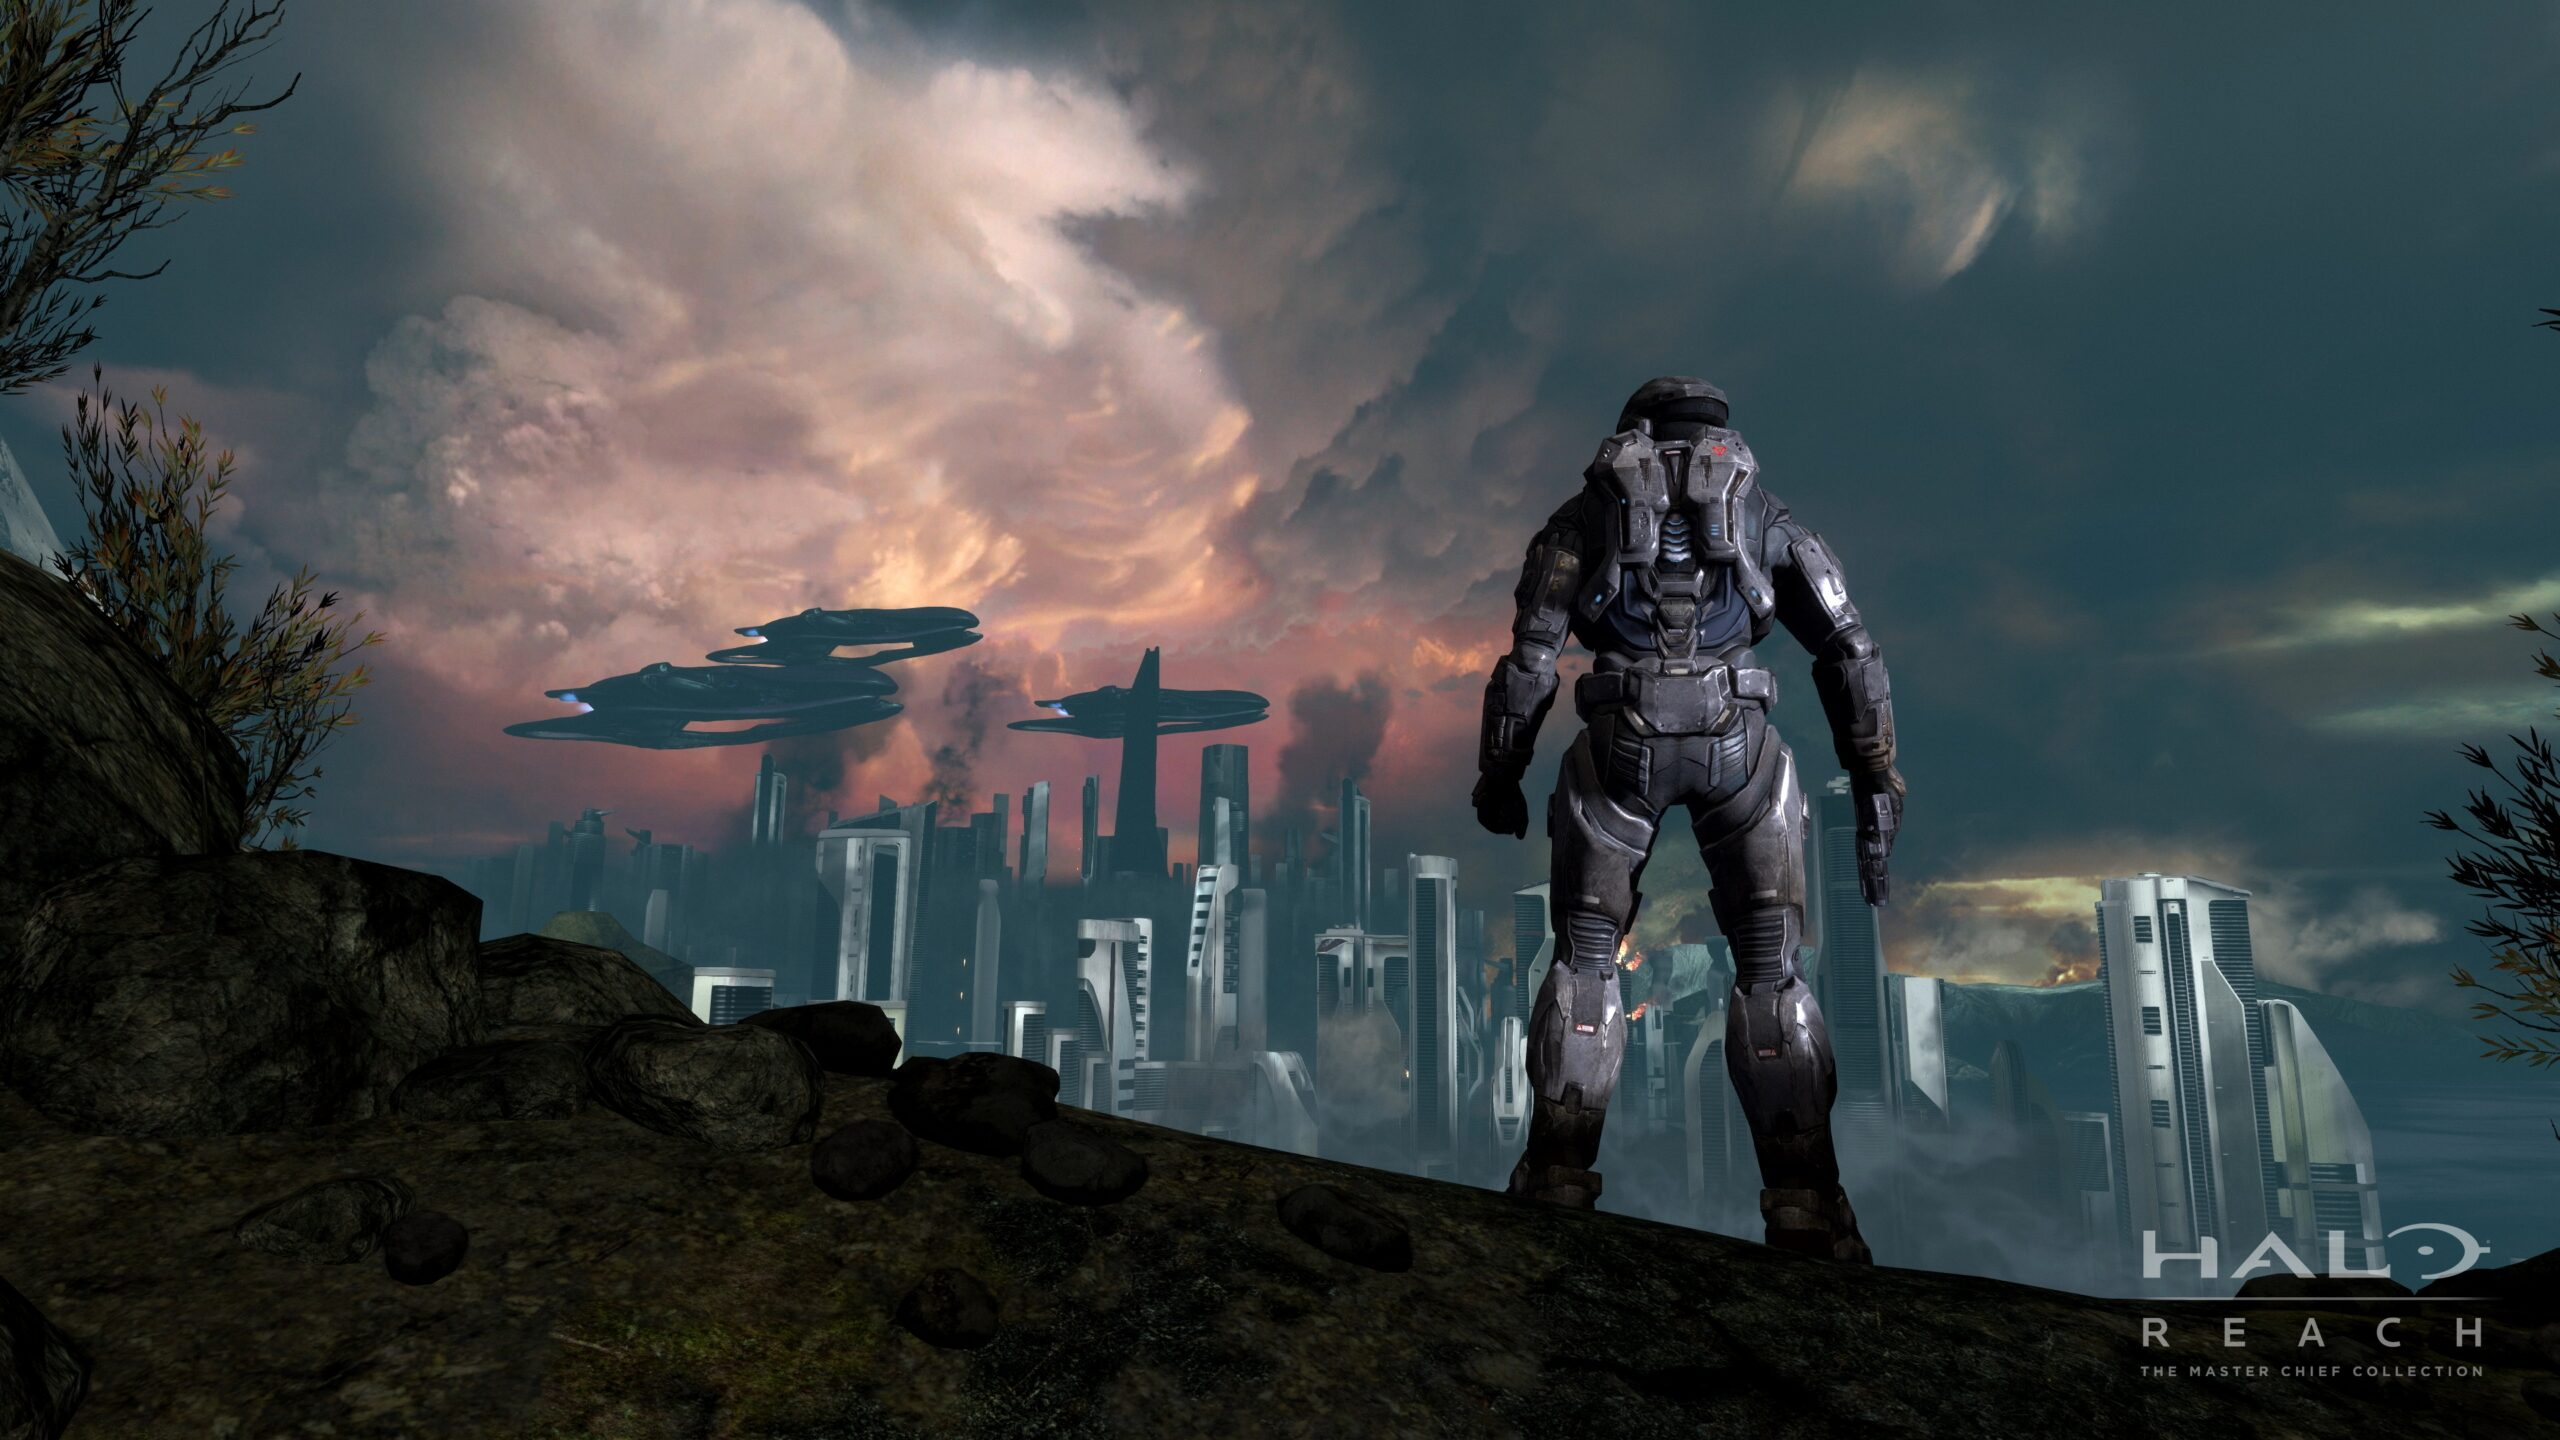 Halo Reach Pc Will Let You Disable Anticheat To Go All In With Modding